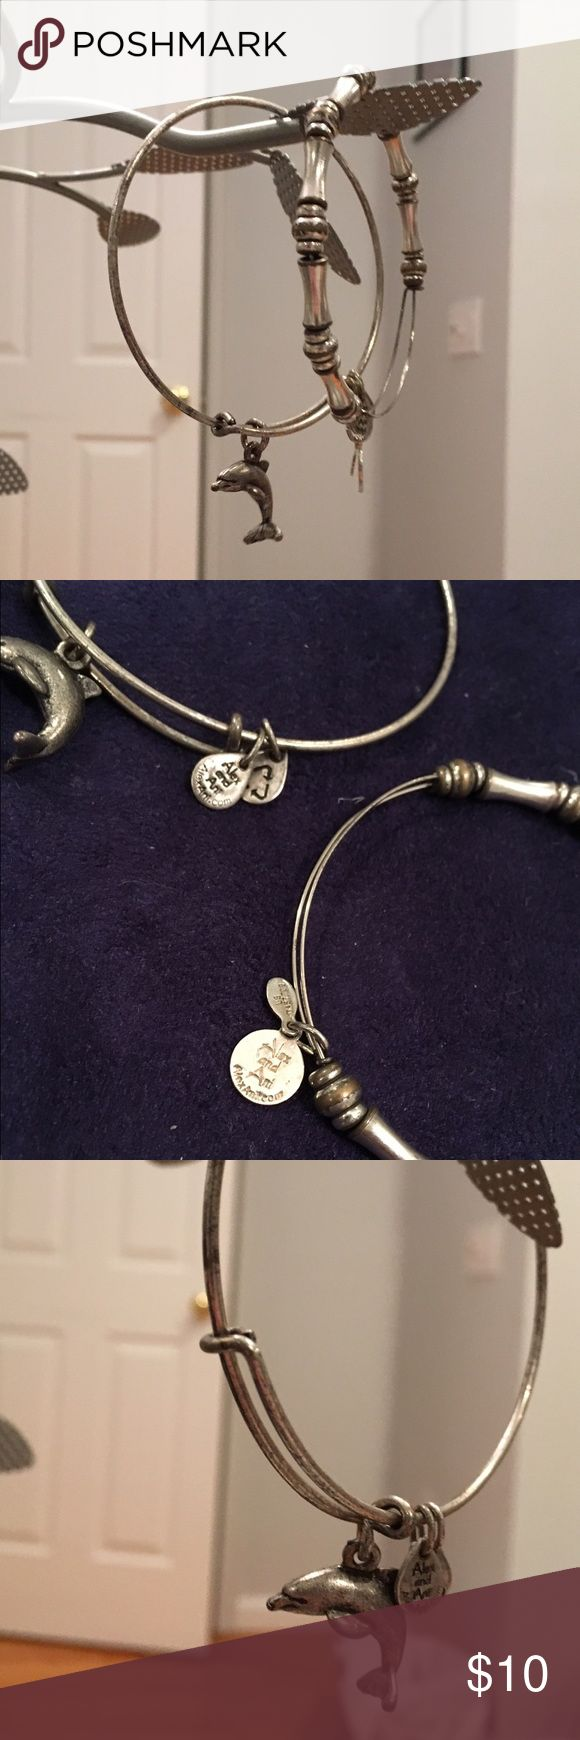 Authentic Alex&Ani silver bracelets Authentic silver Alex&Ani collectible bracelets. The dolphin charm and bamboo beaded bracelets have some tarnishing due to normal wear, but they are still in good shape. They will surely compliment your every day look and can be worn individually or with as many as you like. If you currently own other Alex&Ani bracelets try mixing and matching the gold with the silver! This is a package deal of $10! (All other bracelets are not for sale) Alex & Ani Jewelry…